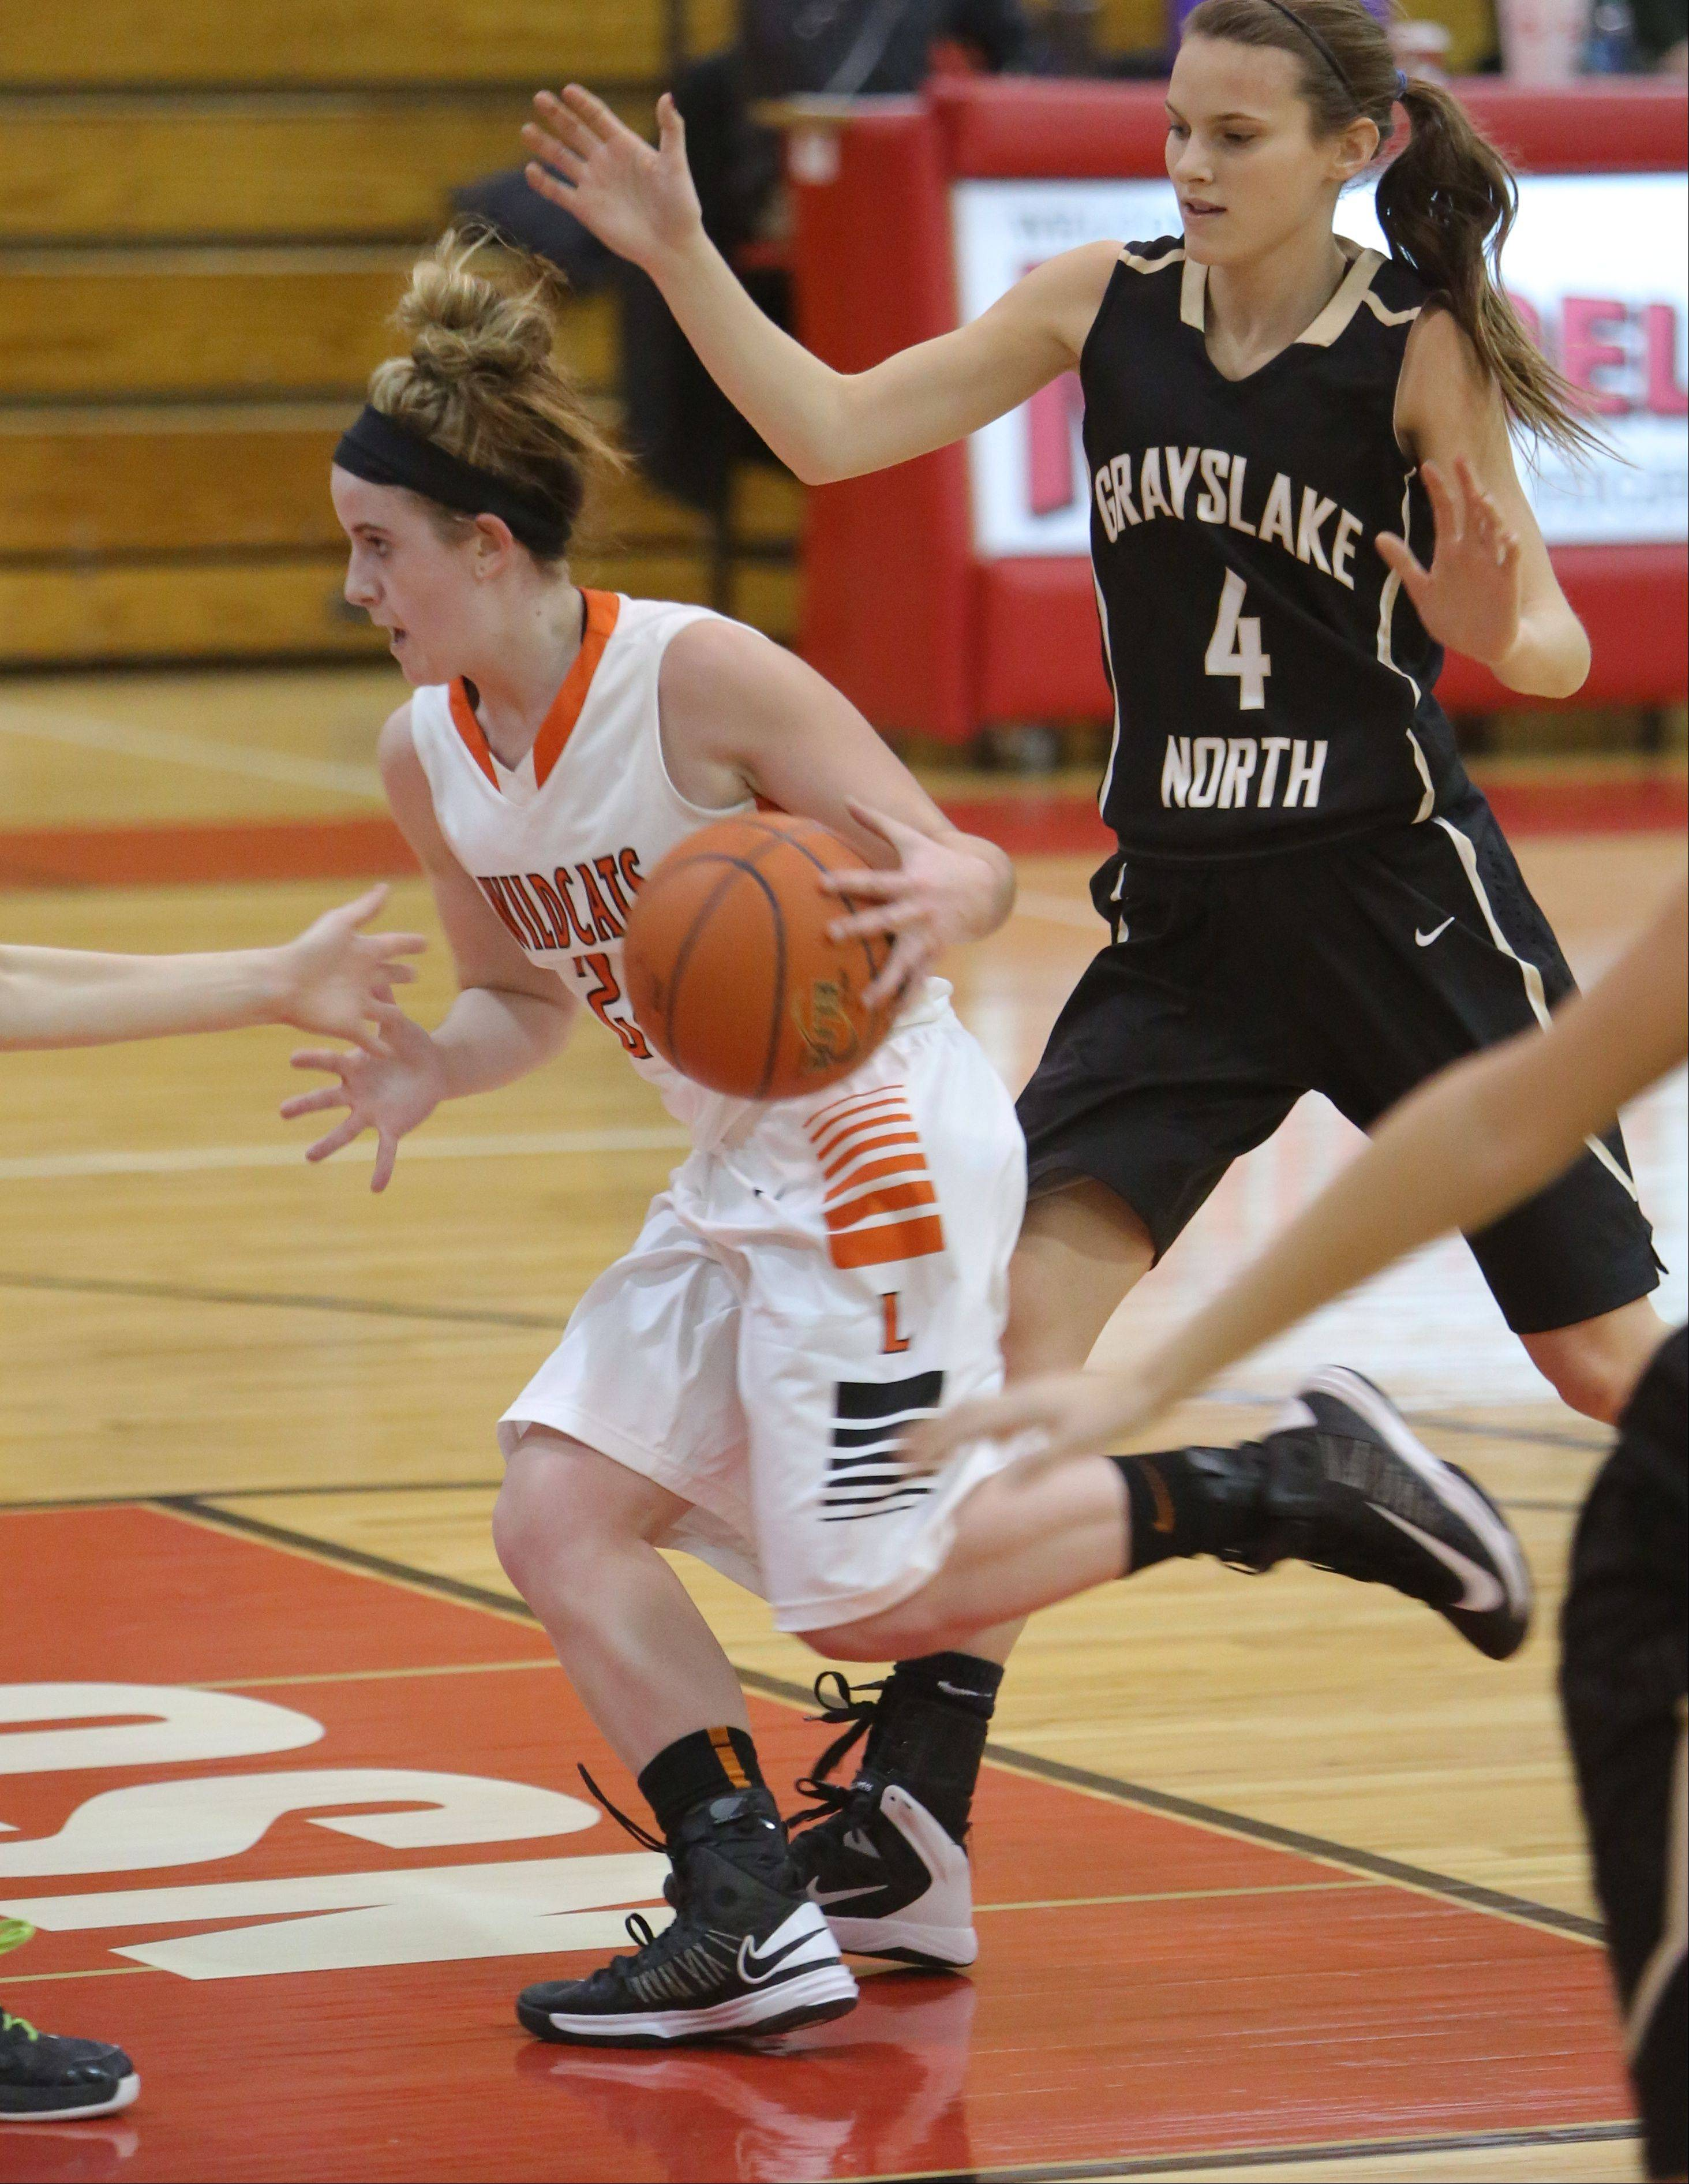 Images from the Libertyville vs. Grayslake North girls basketball in Mundelein on Thursday, Dec. 26.